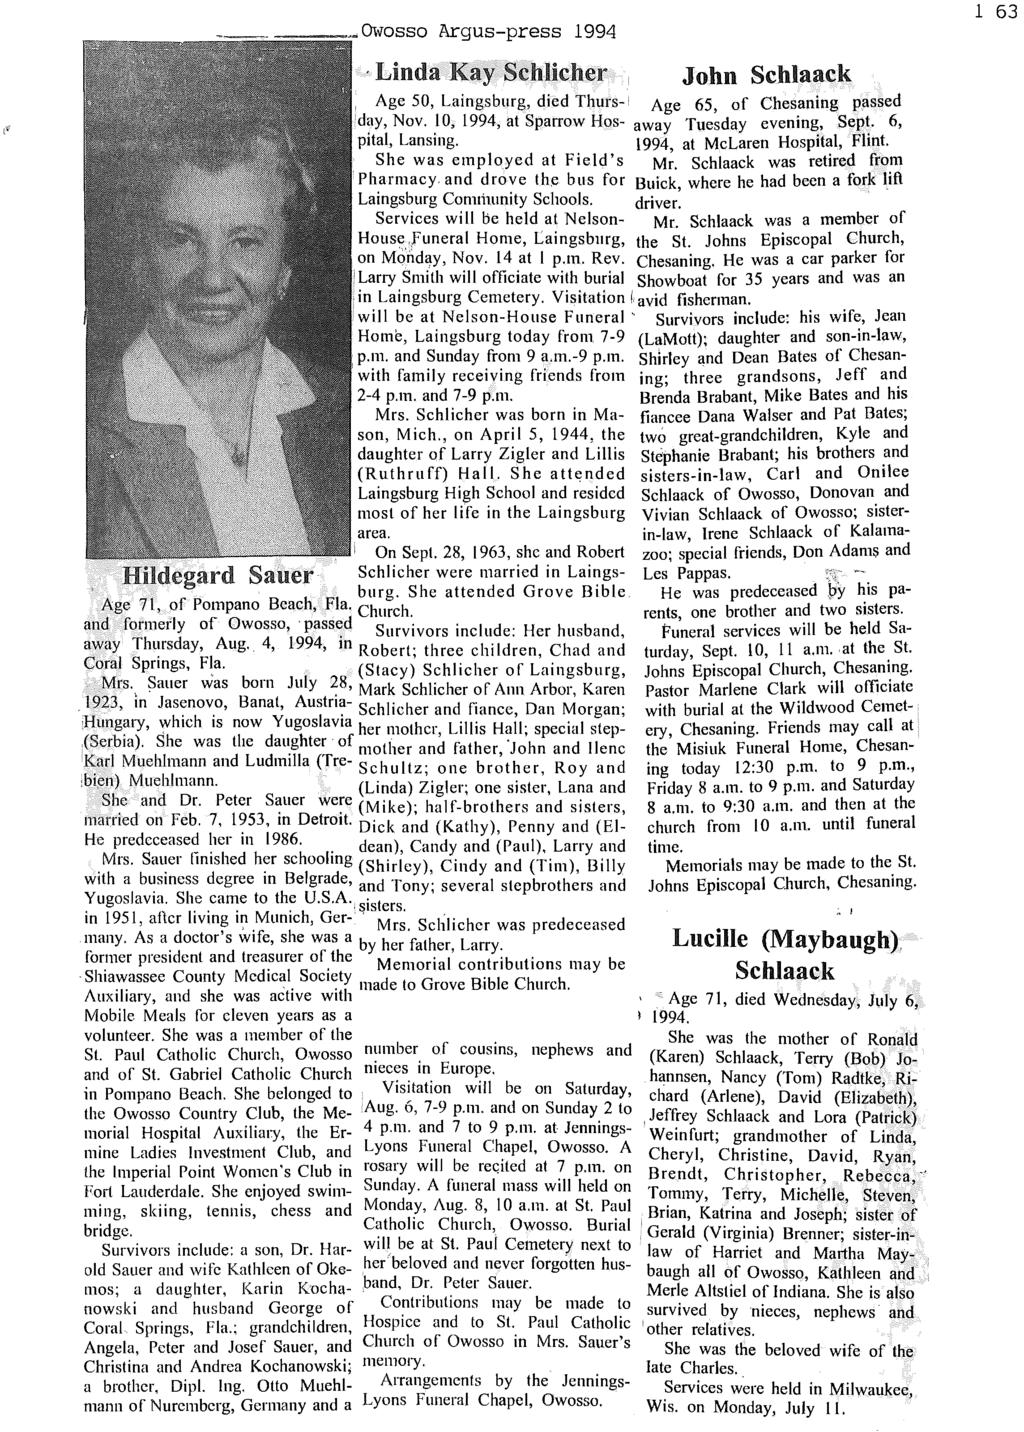 ~Owosso Argus-press 1994 1 63, Linda Kay Schlicher John Schlaack,.Age 50, Laingsburg, died Thurs- Age 65, of Chesaning passed day, Nov. 10, 1994, at Sparrow Hos- away Tuesday evening, Sept.